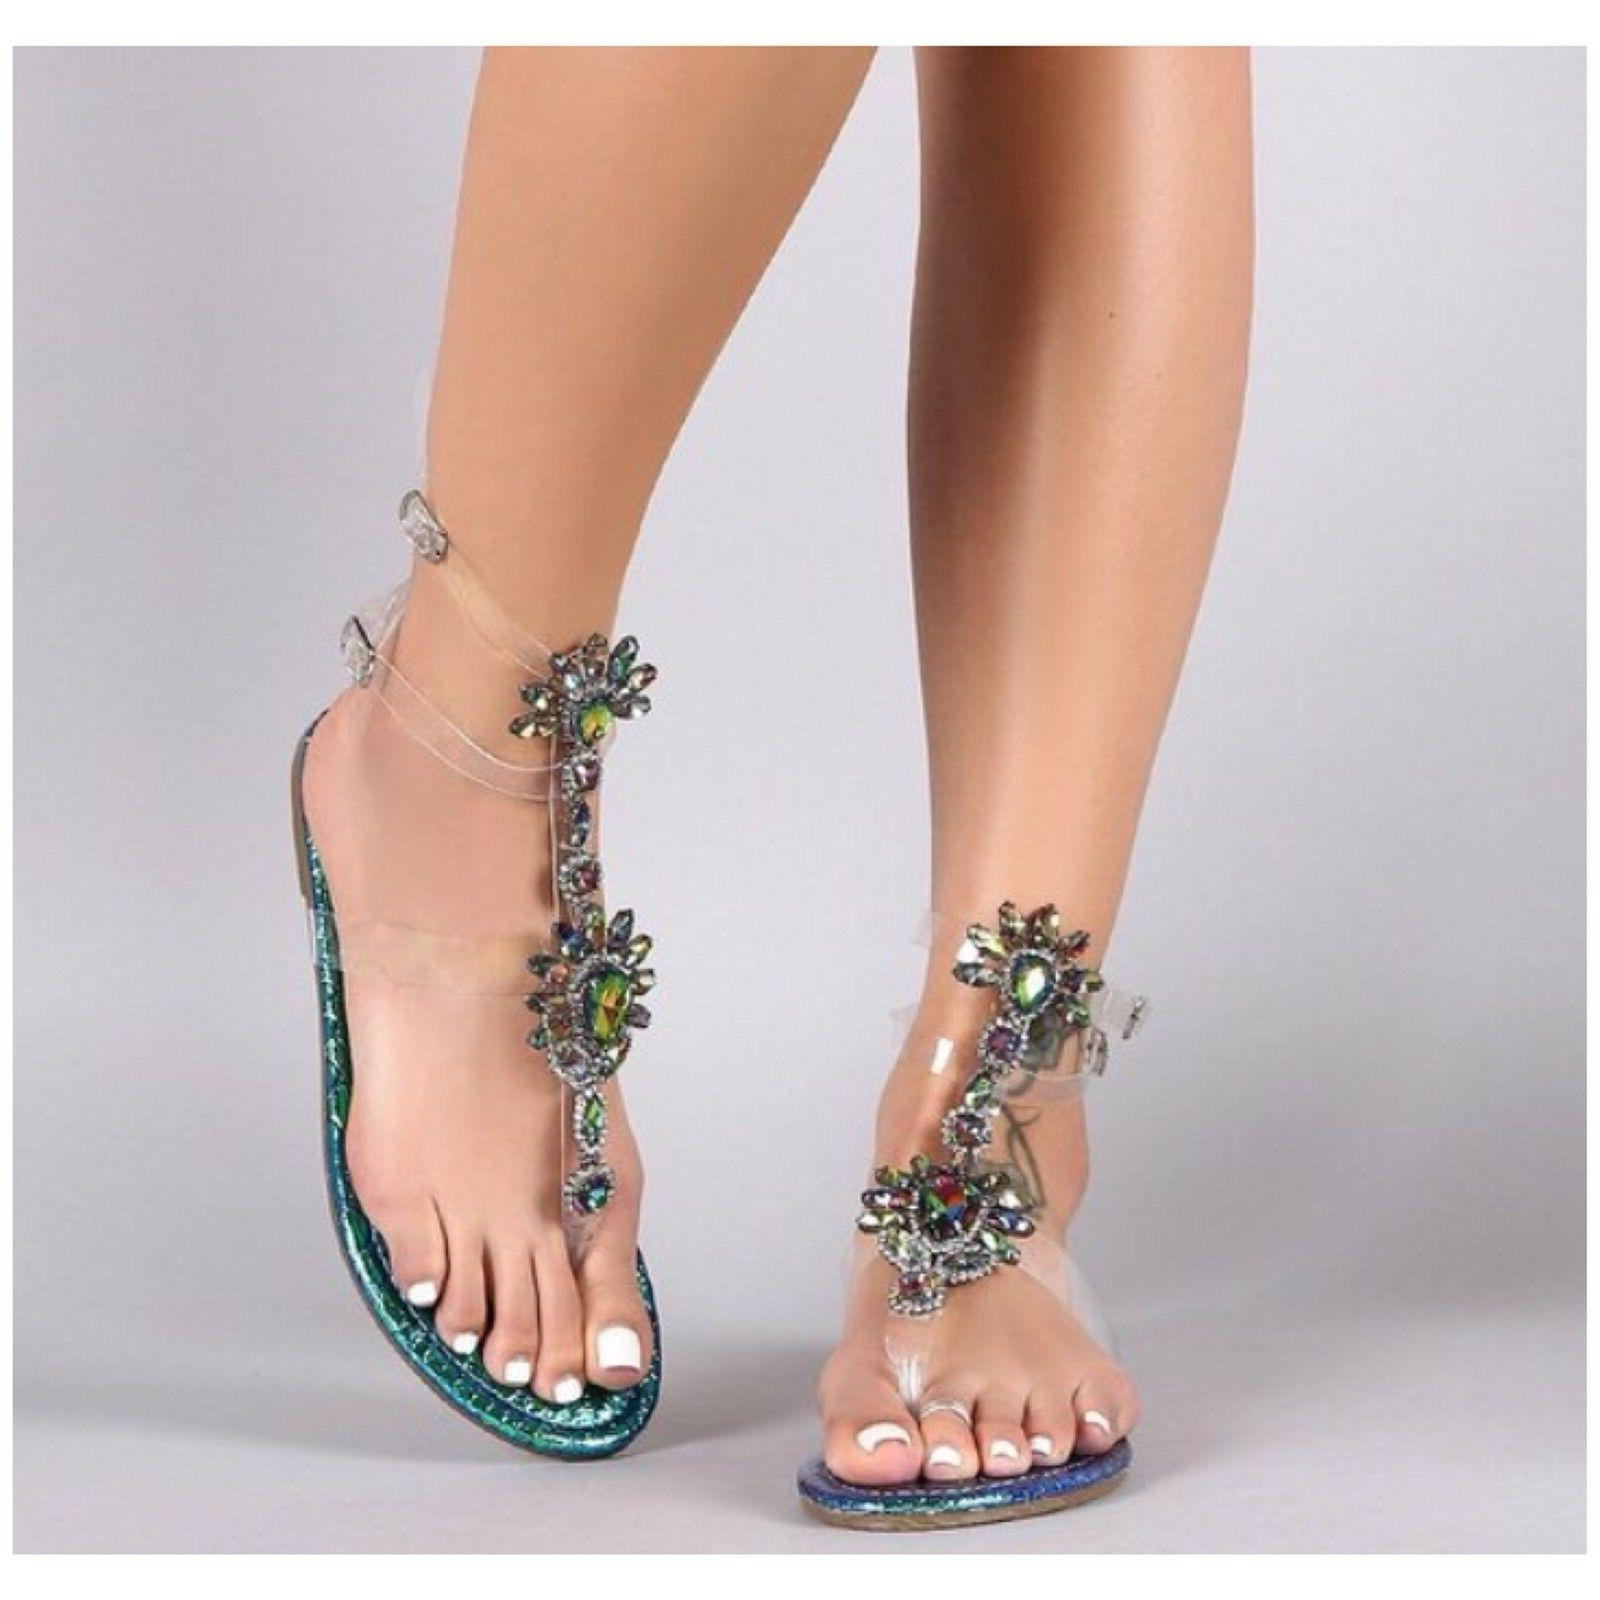 marlo 9 blue green hologram clear strappy